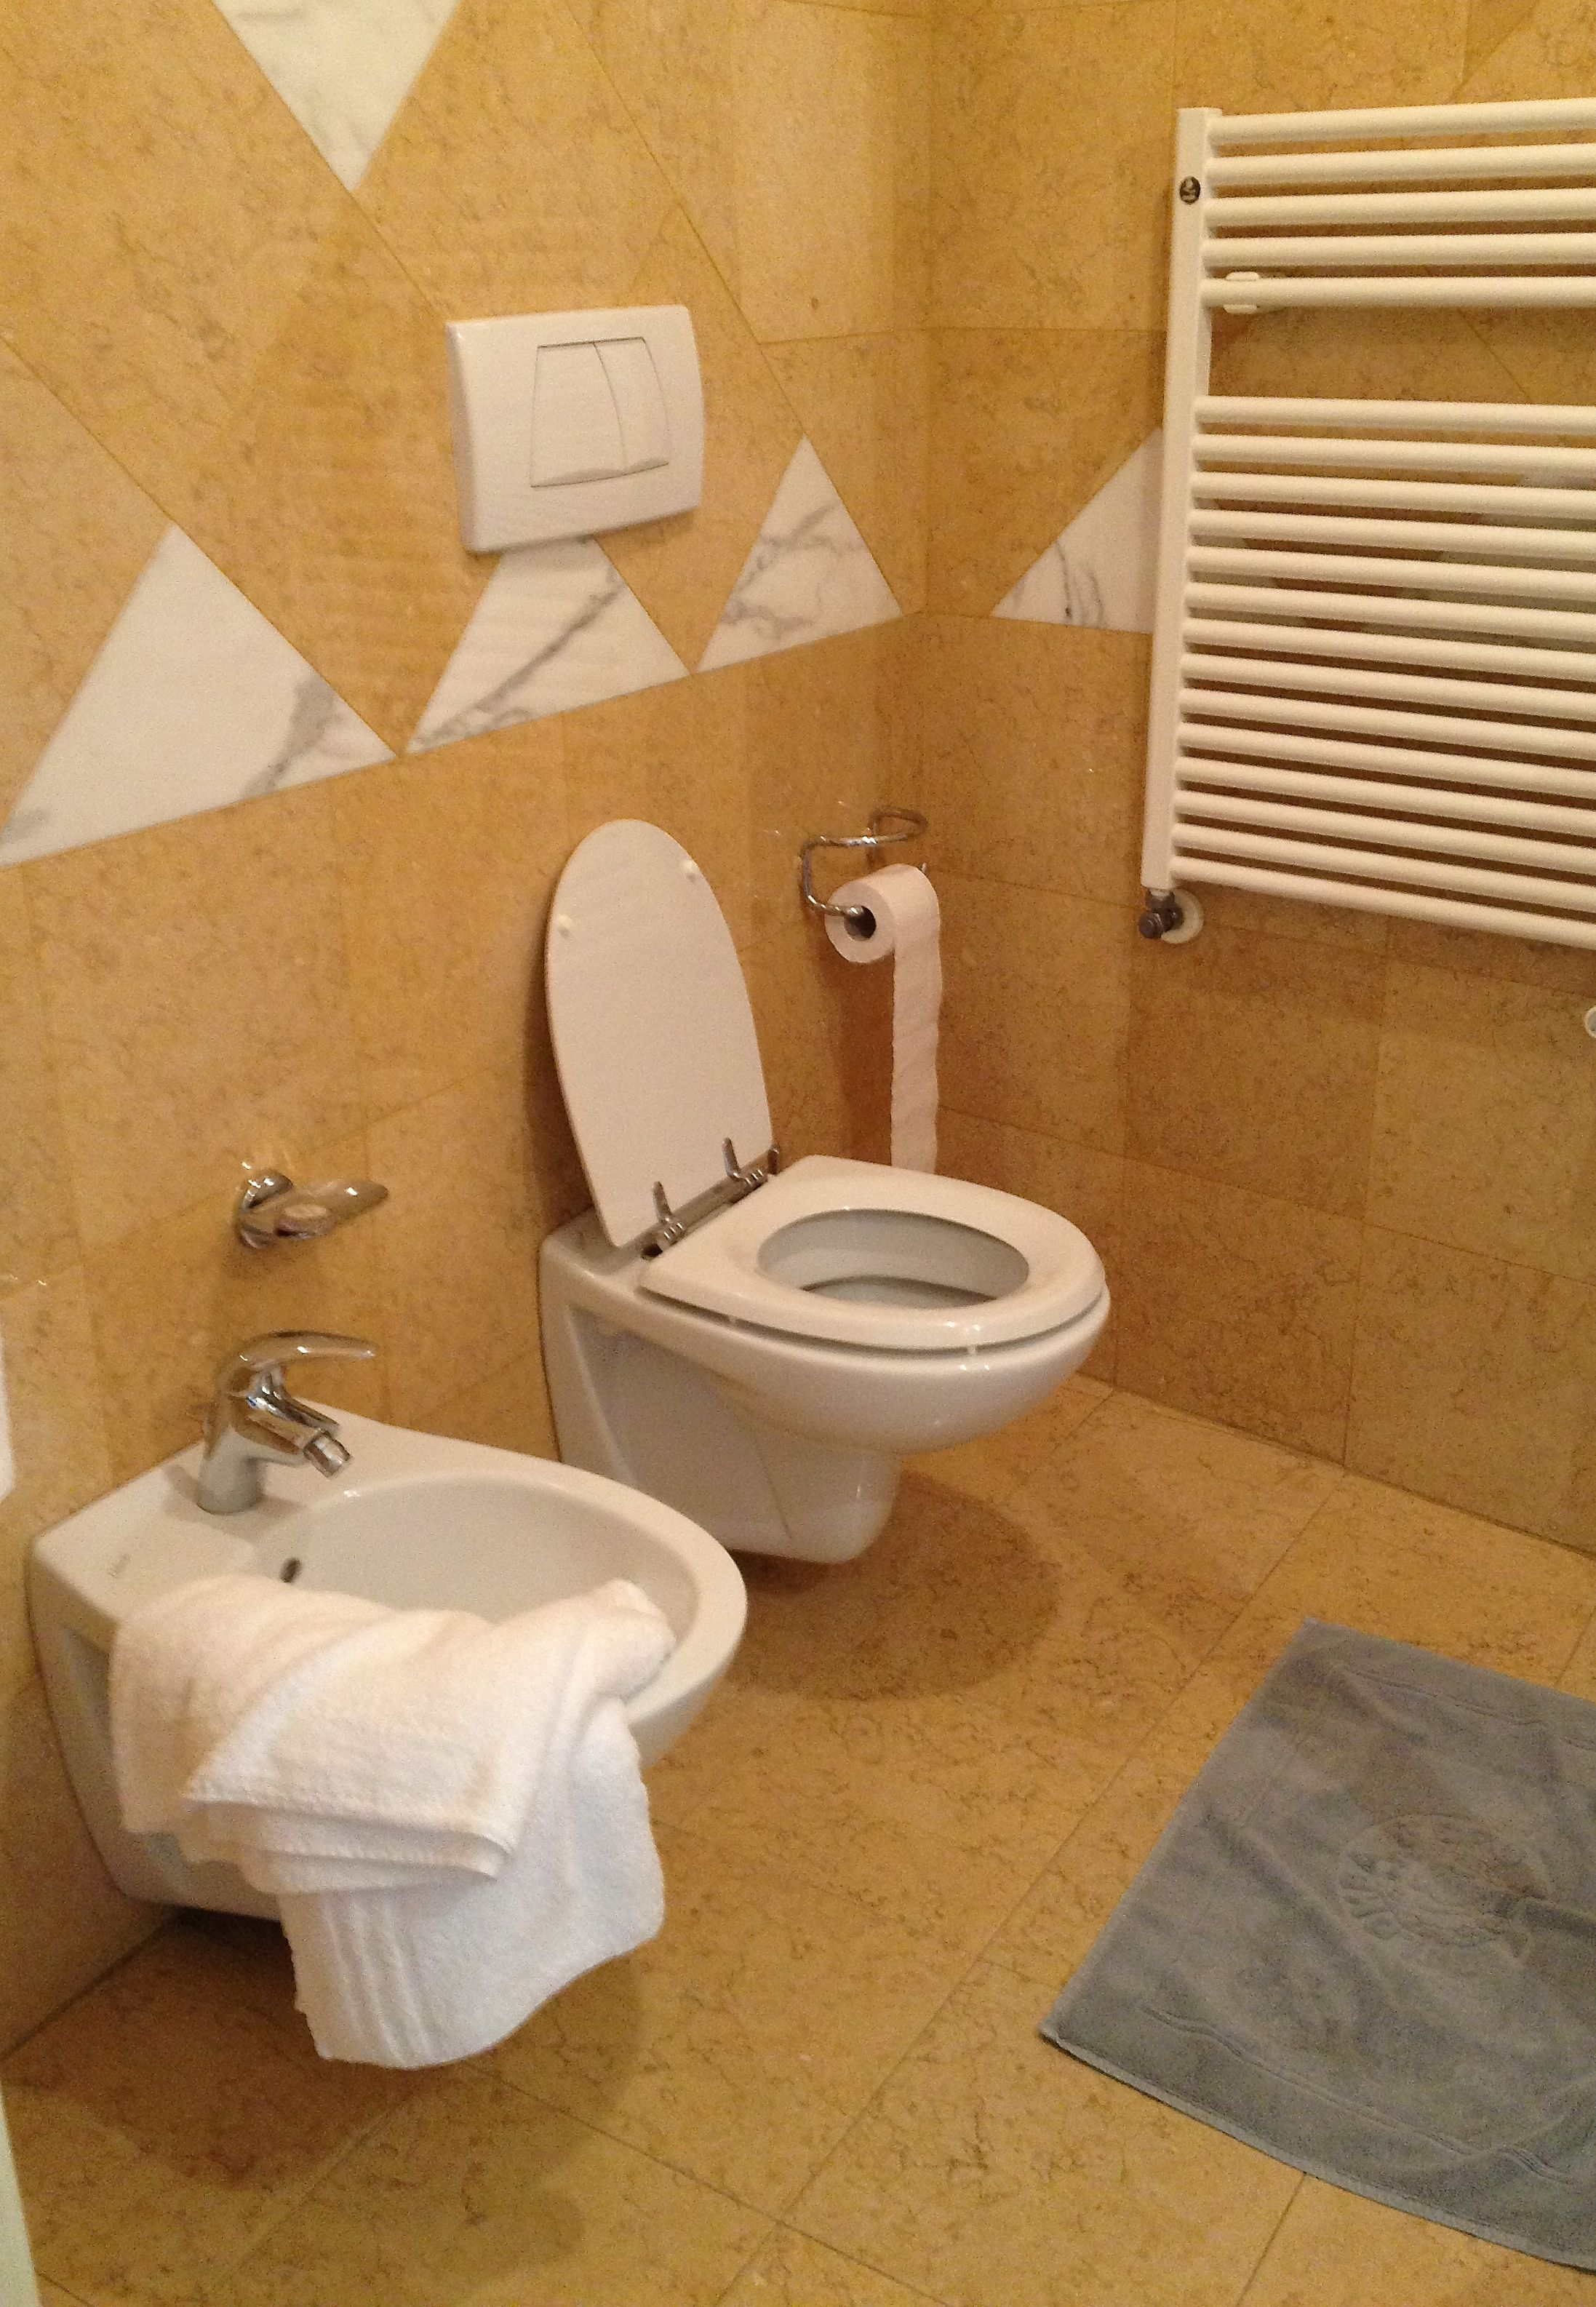 A typical Italian hotel bathroom